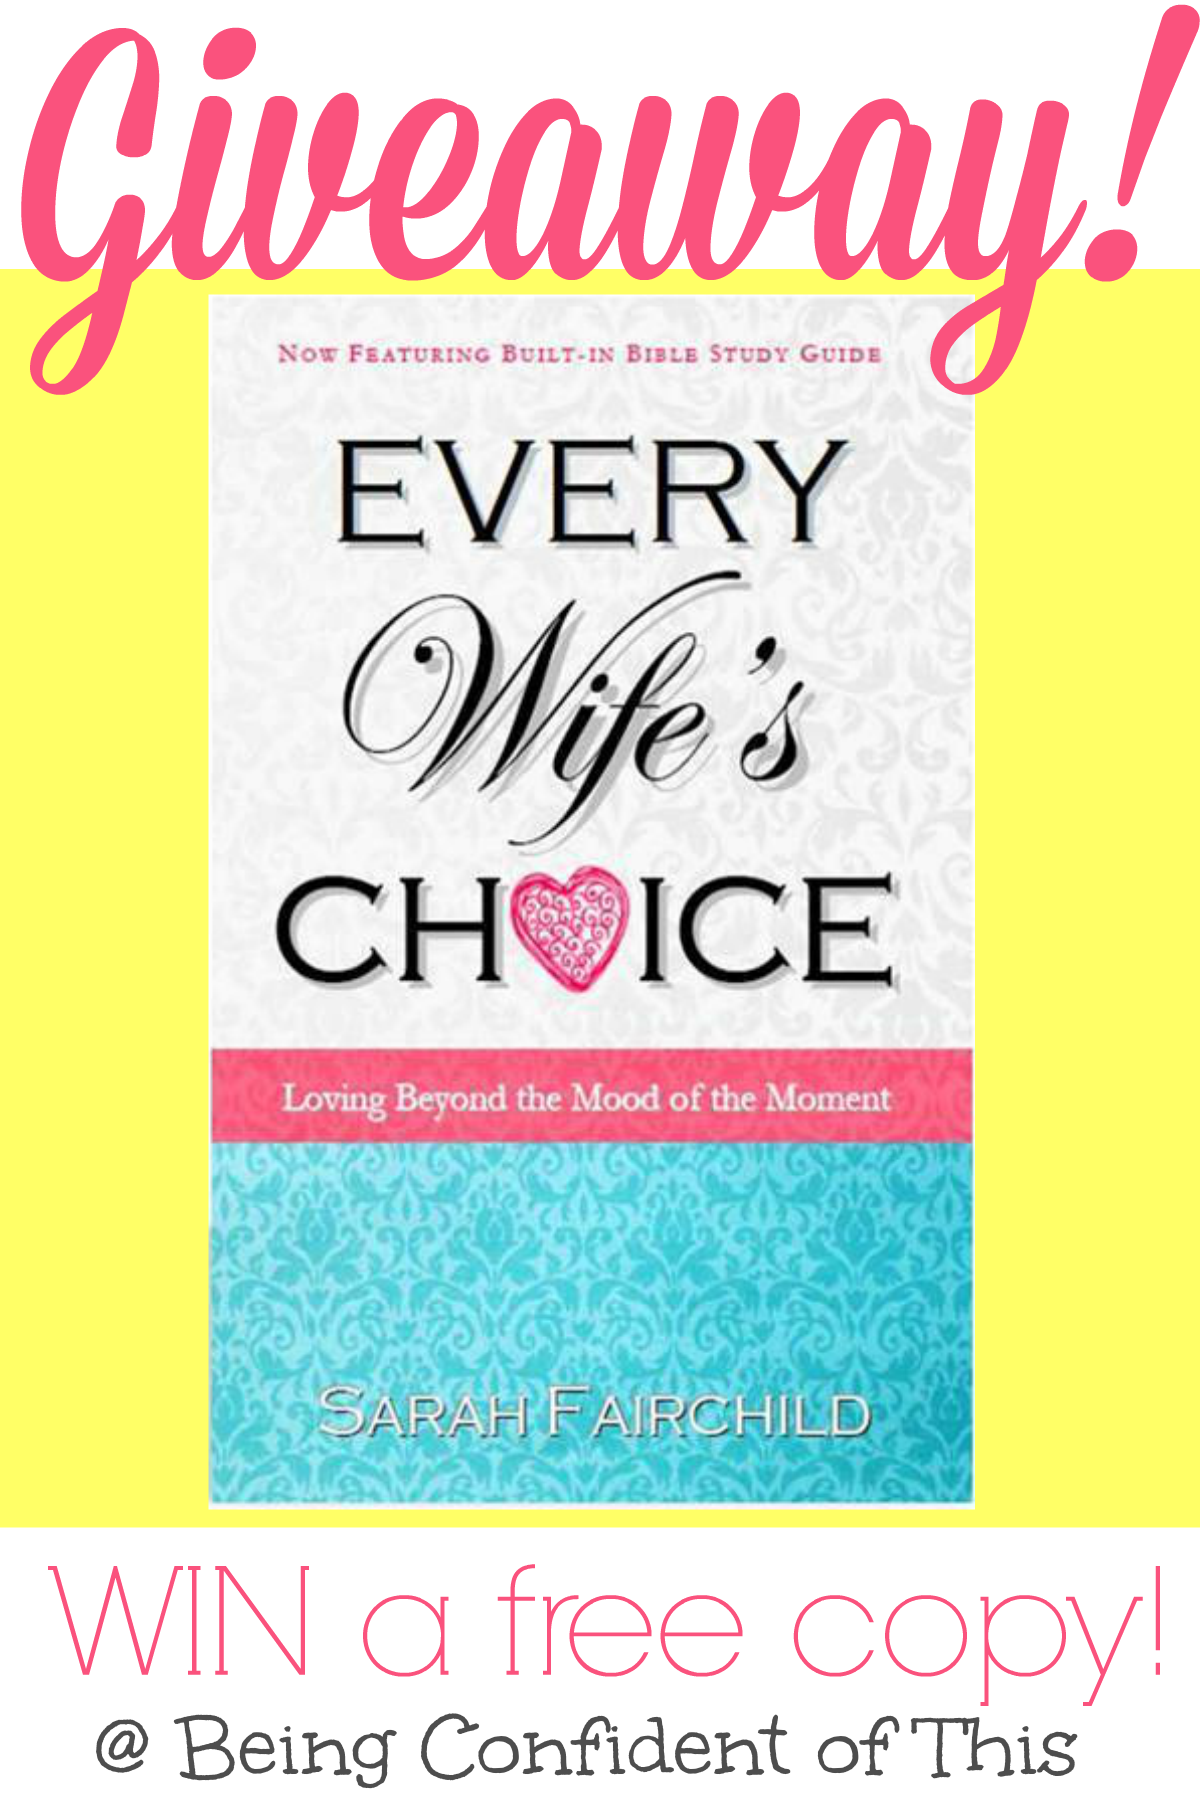 "GIVEAWAY:  Enter now to win a free copy of new release Every Wife's Choice by Sarah Fairchild. Every Wife's Choice teaches women how to choose love in spite of our fickle moods.  Combining humorous anecdotes with Greek word study, the author leads women to understand how to overcome the ""mood of the moment.""  Her applications of the First Corinthians love passage are both practical and biblical!"